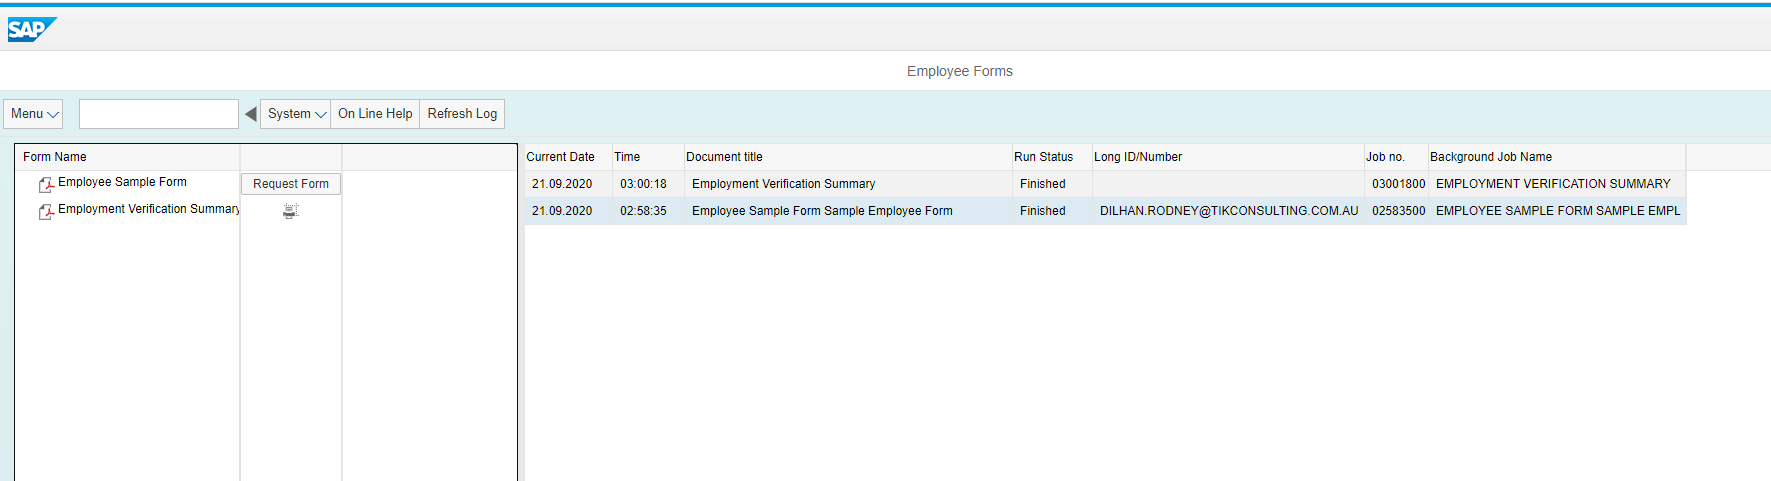 Employee Forms Landing Page